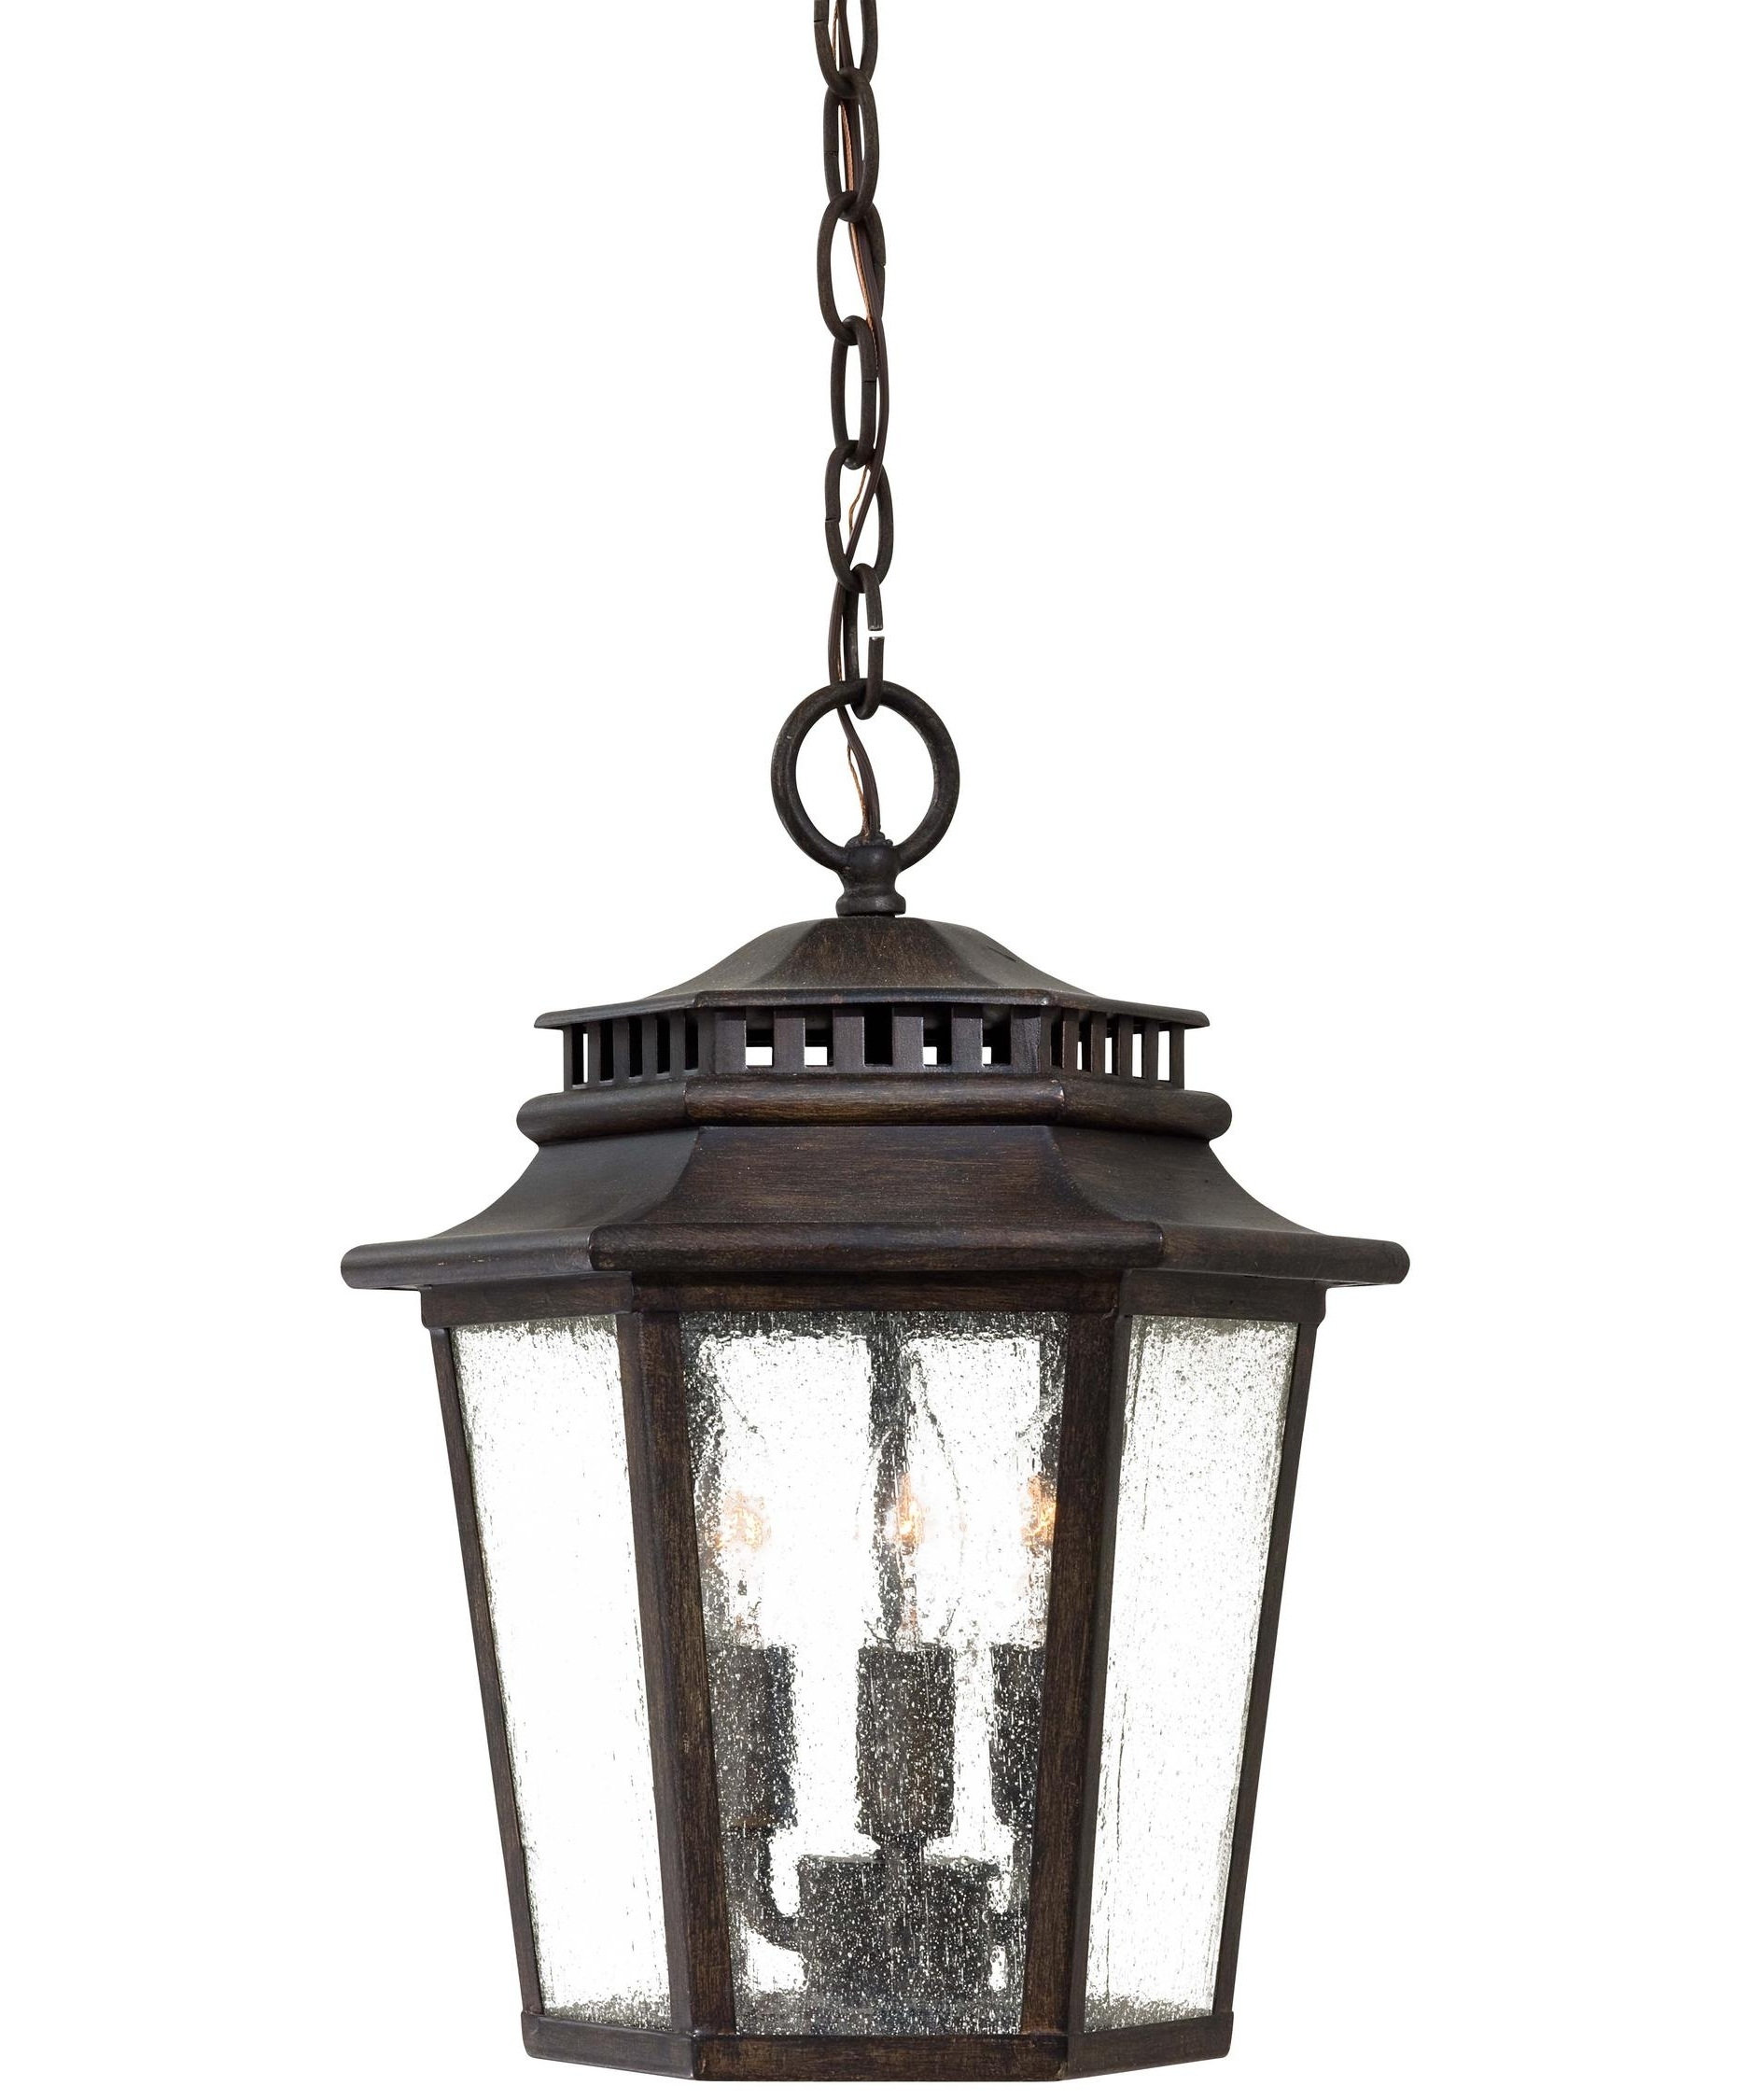 Chandeliers Design : Fabulous Extra Large Lanterndelierlarge Inside Fashionable Antique Outdoor Hanging Lights (View 11 of 20)